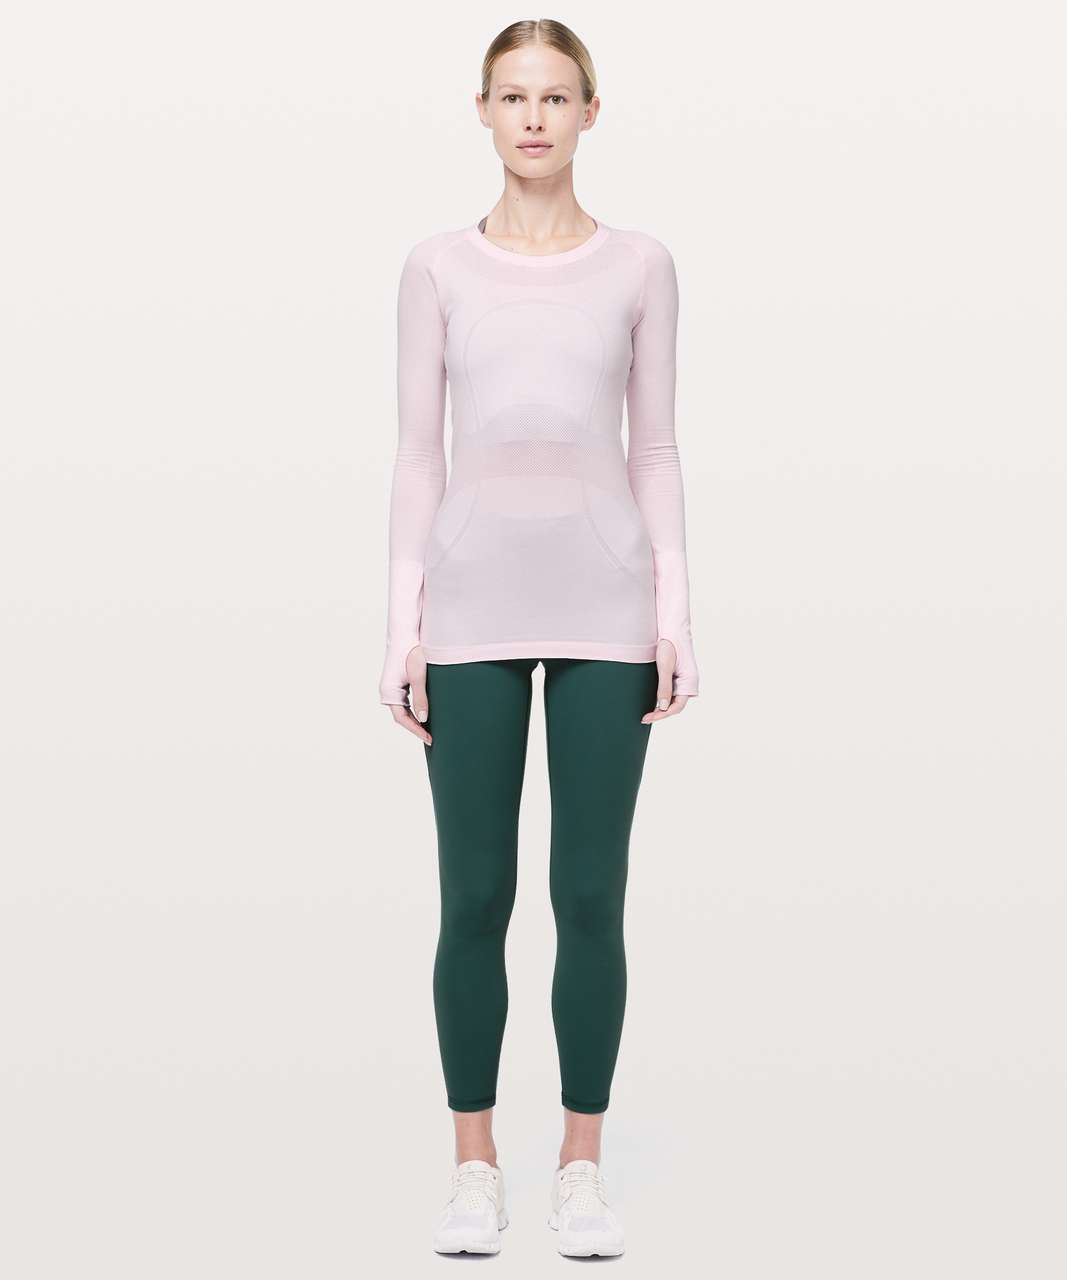 Lululemon Swiftly Tech Long Sleeve Crew - Pink Glow / Pink Glow